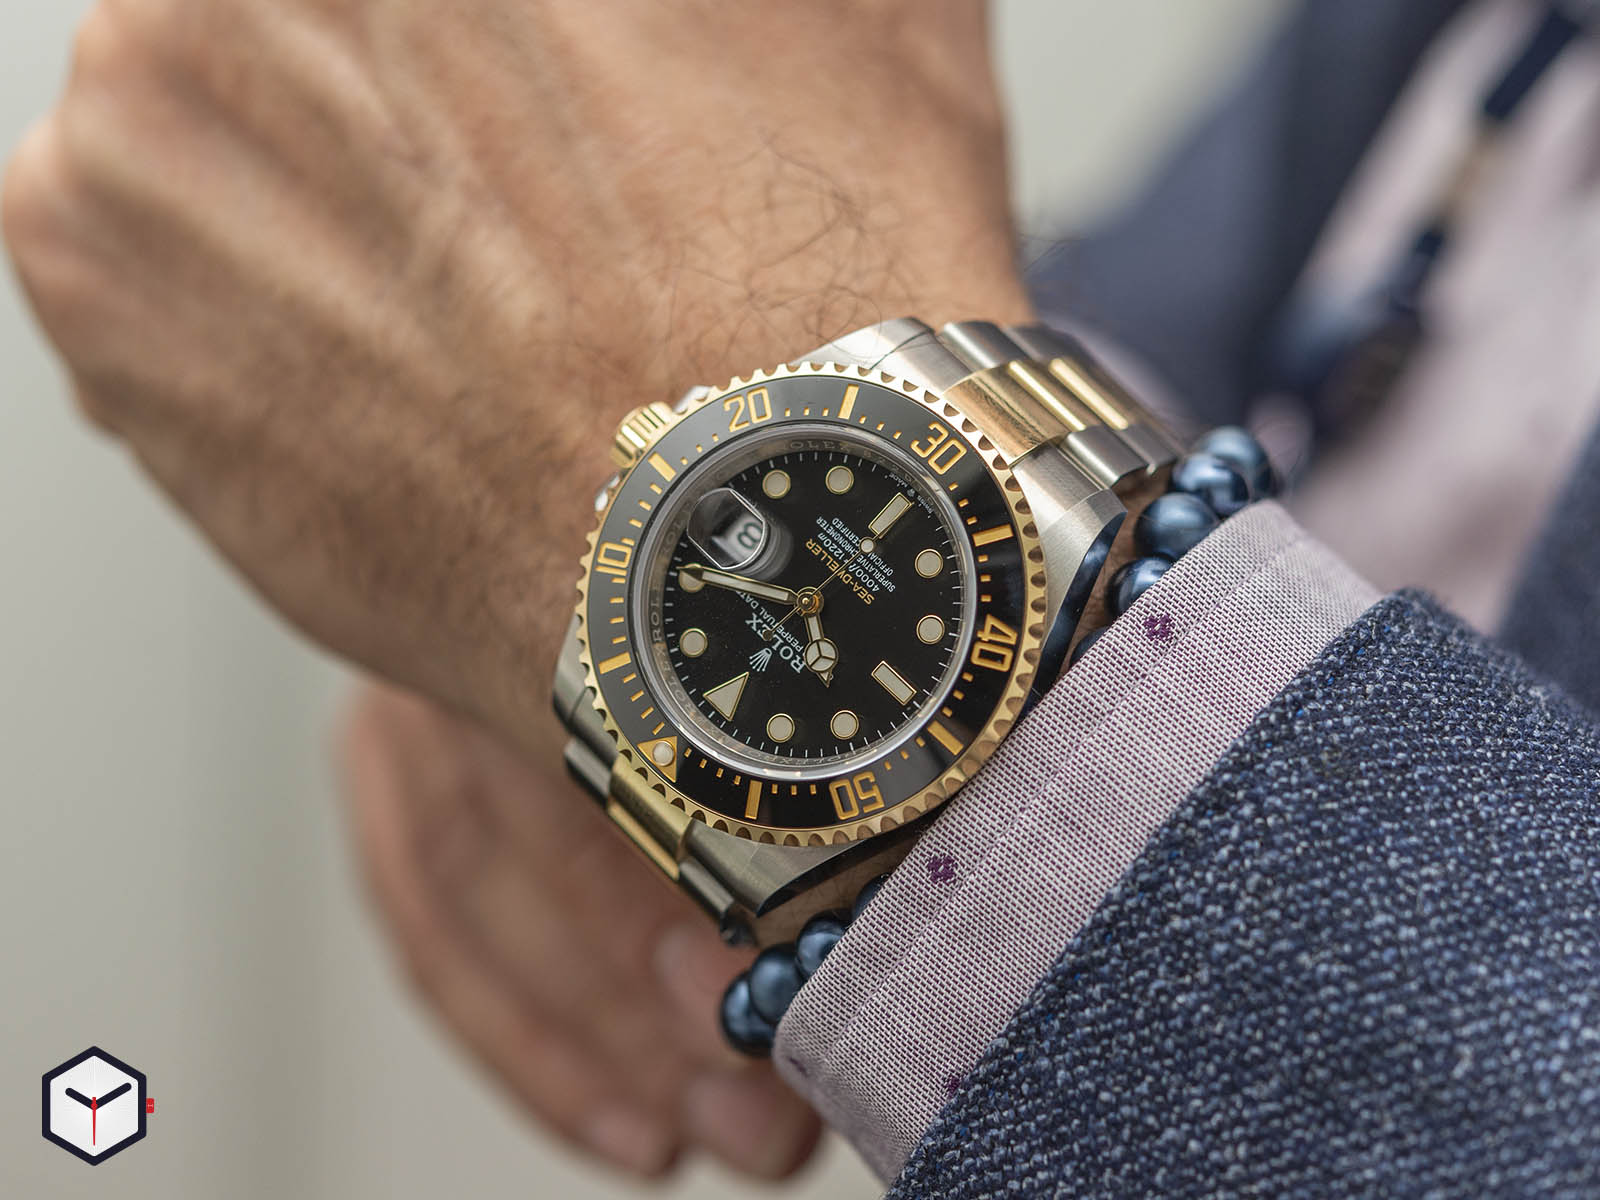 126603-rolex-sea-dweller-two-tone-baselworld-2019-9.jpg